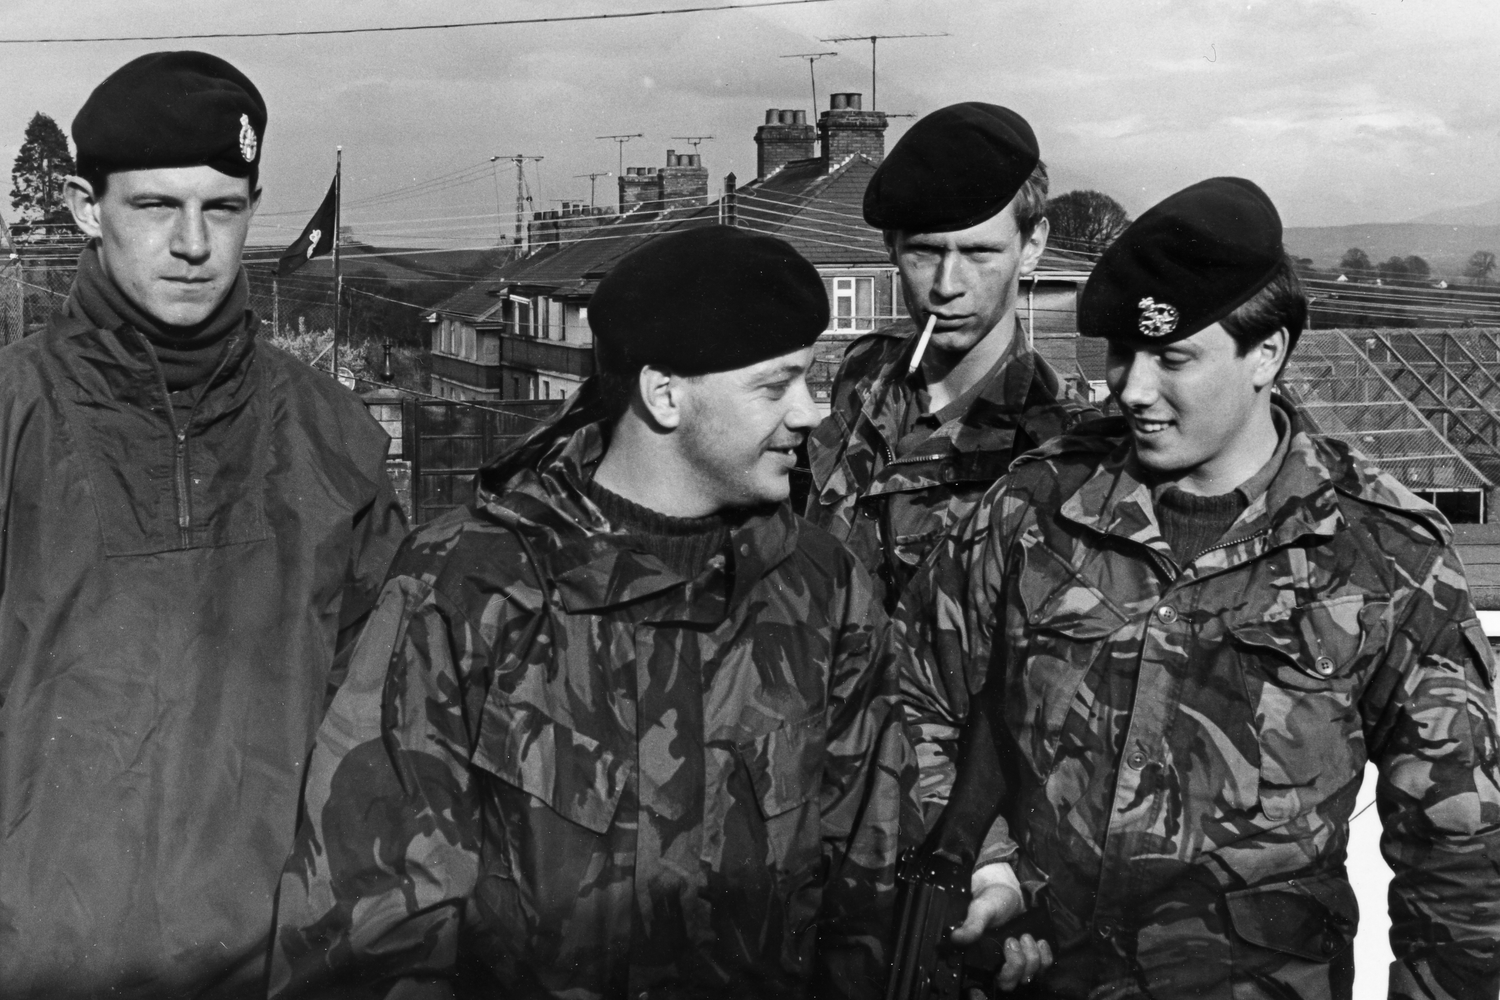 John Moore far right: His batallion arrived in Bessbrook in March 1981